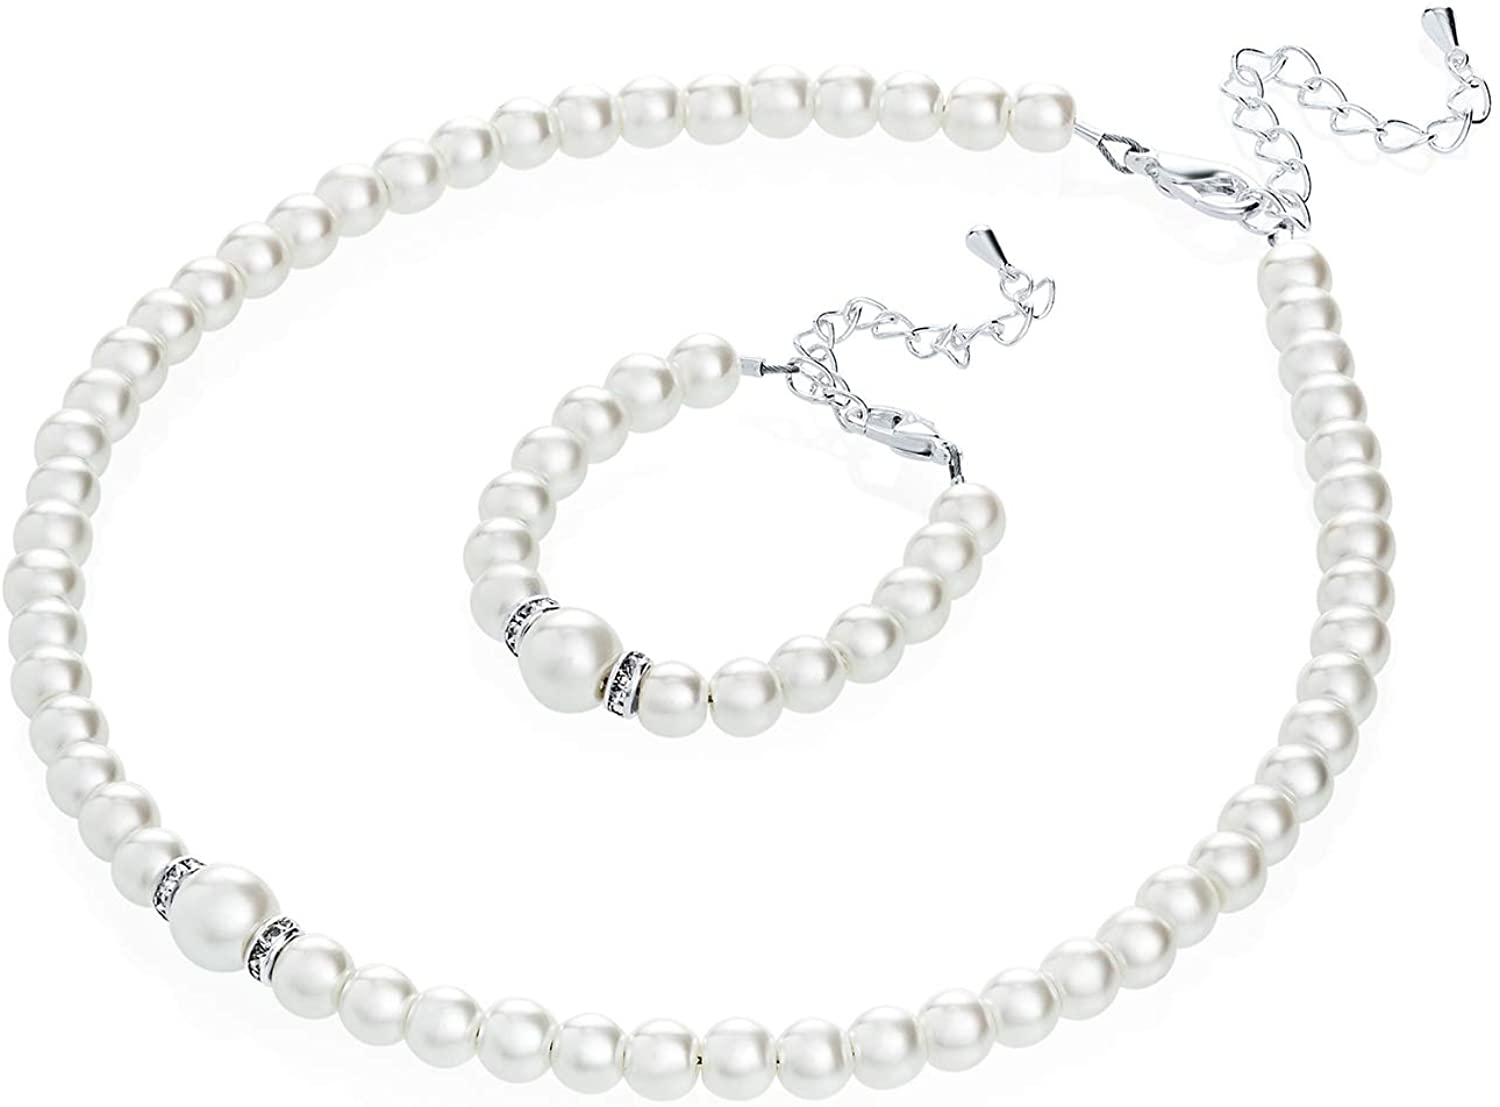 Crystal Dream Elegant White Simulated Pearl Necklace and Bracelet Stylish Gift Set Women & Children (GS-P-W-All)